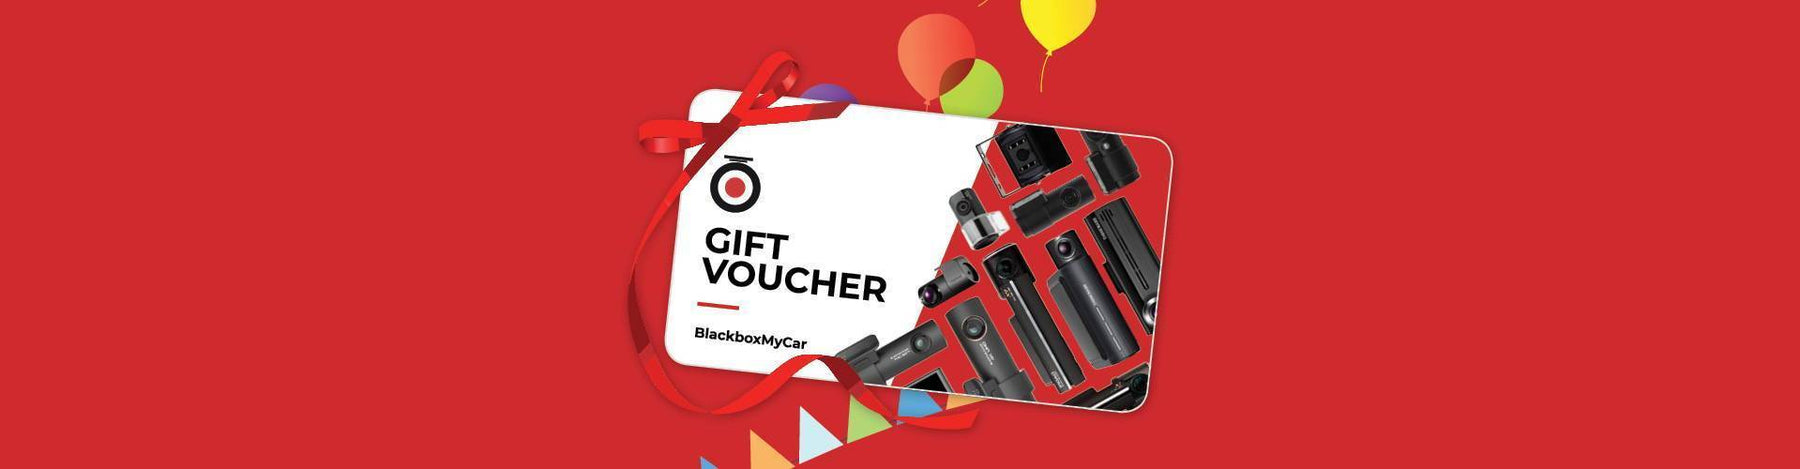 Gift Card Vouchers Now Available at BlackboxMyCar